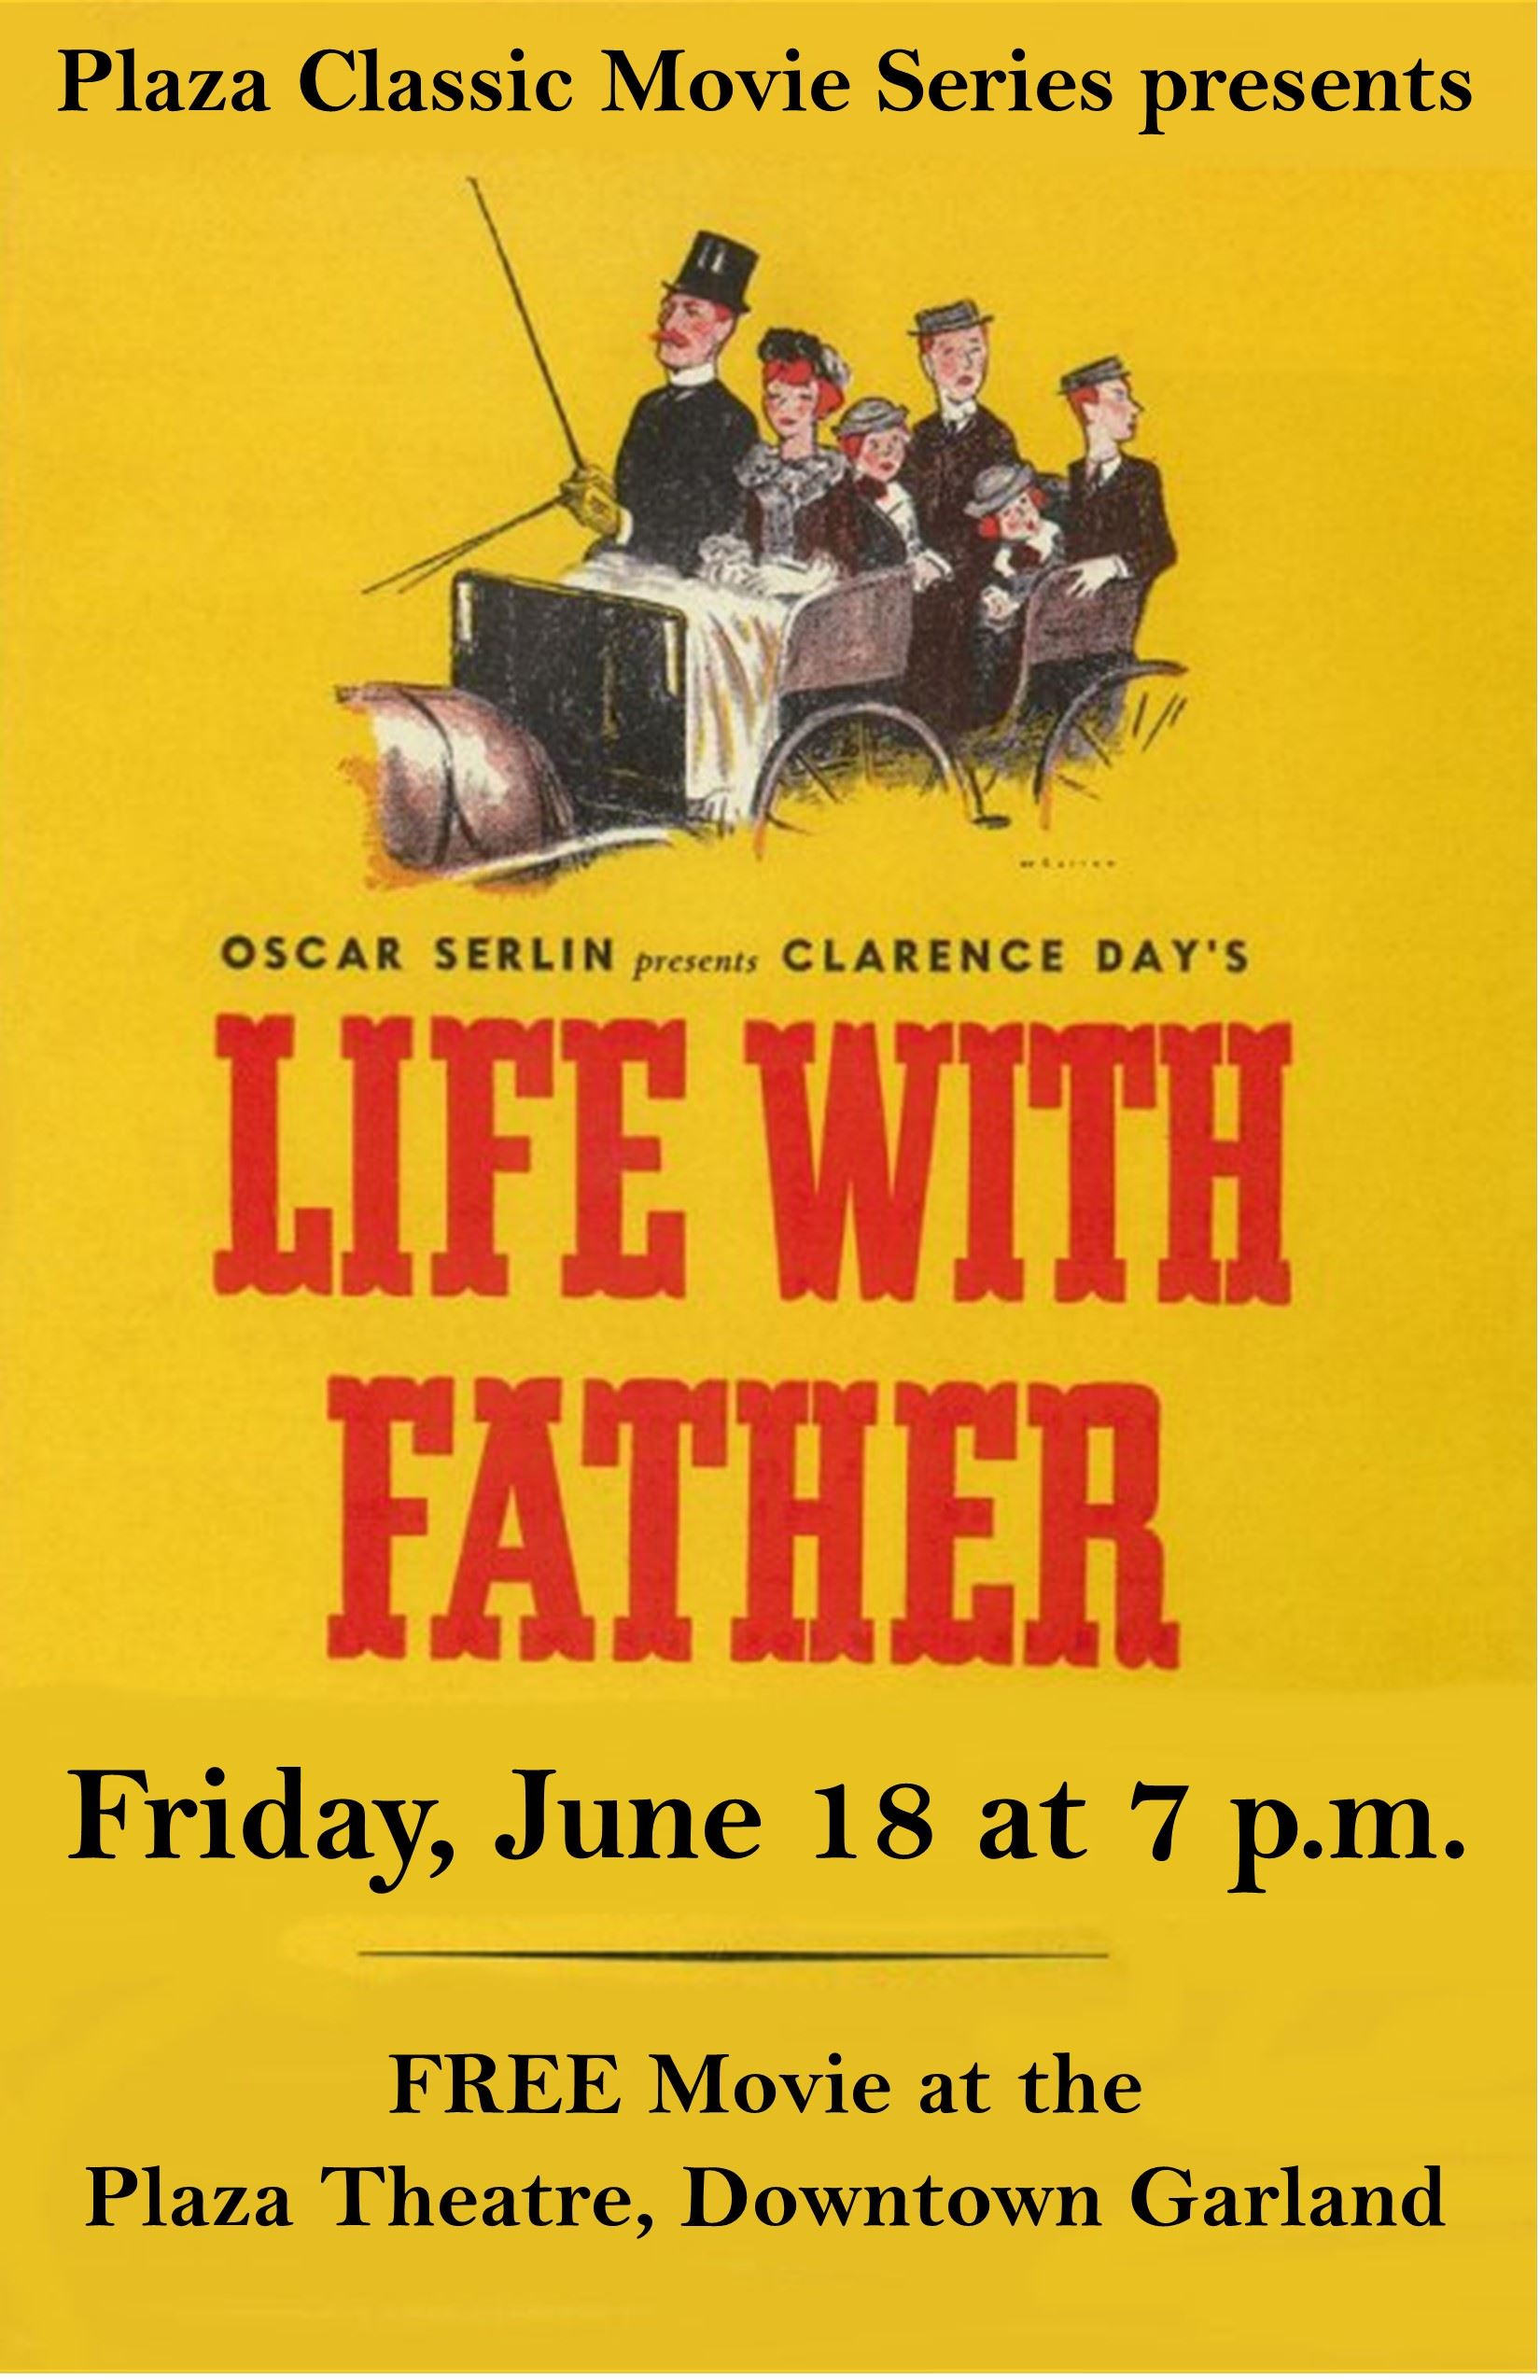 Life with Father, June 18 at 7 p.m. at the Plaza Theatre, Downtown Garland